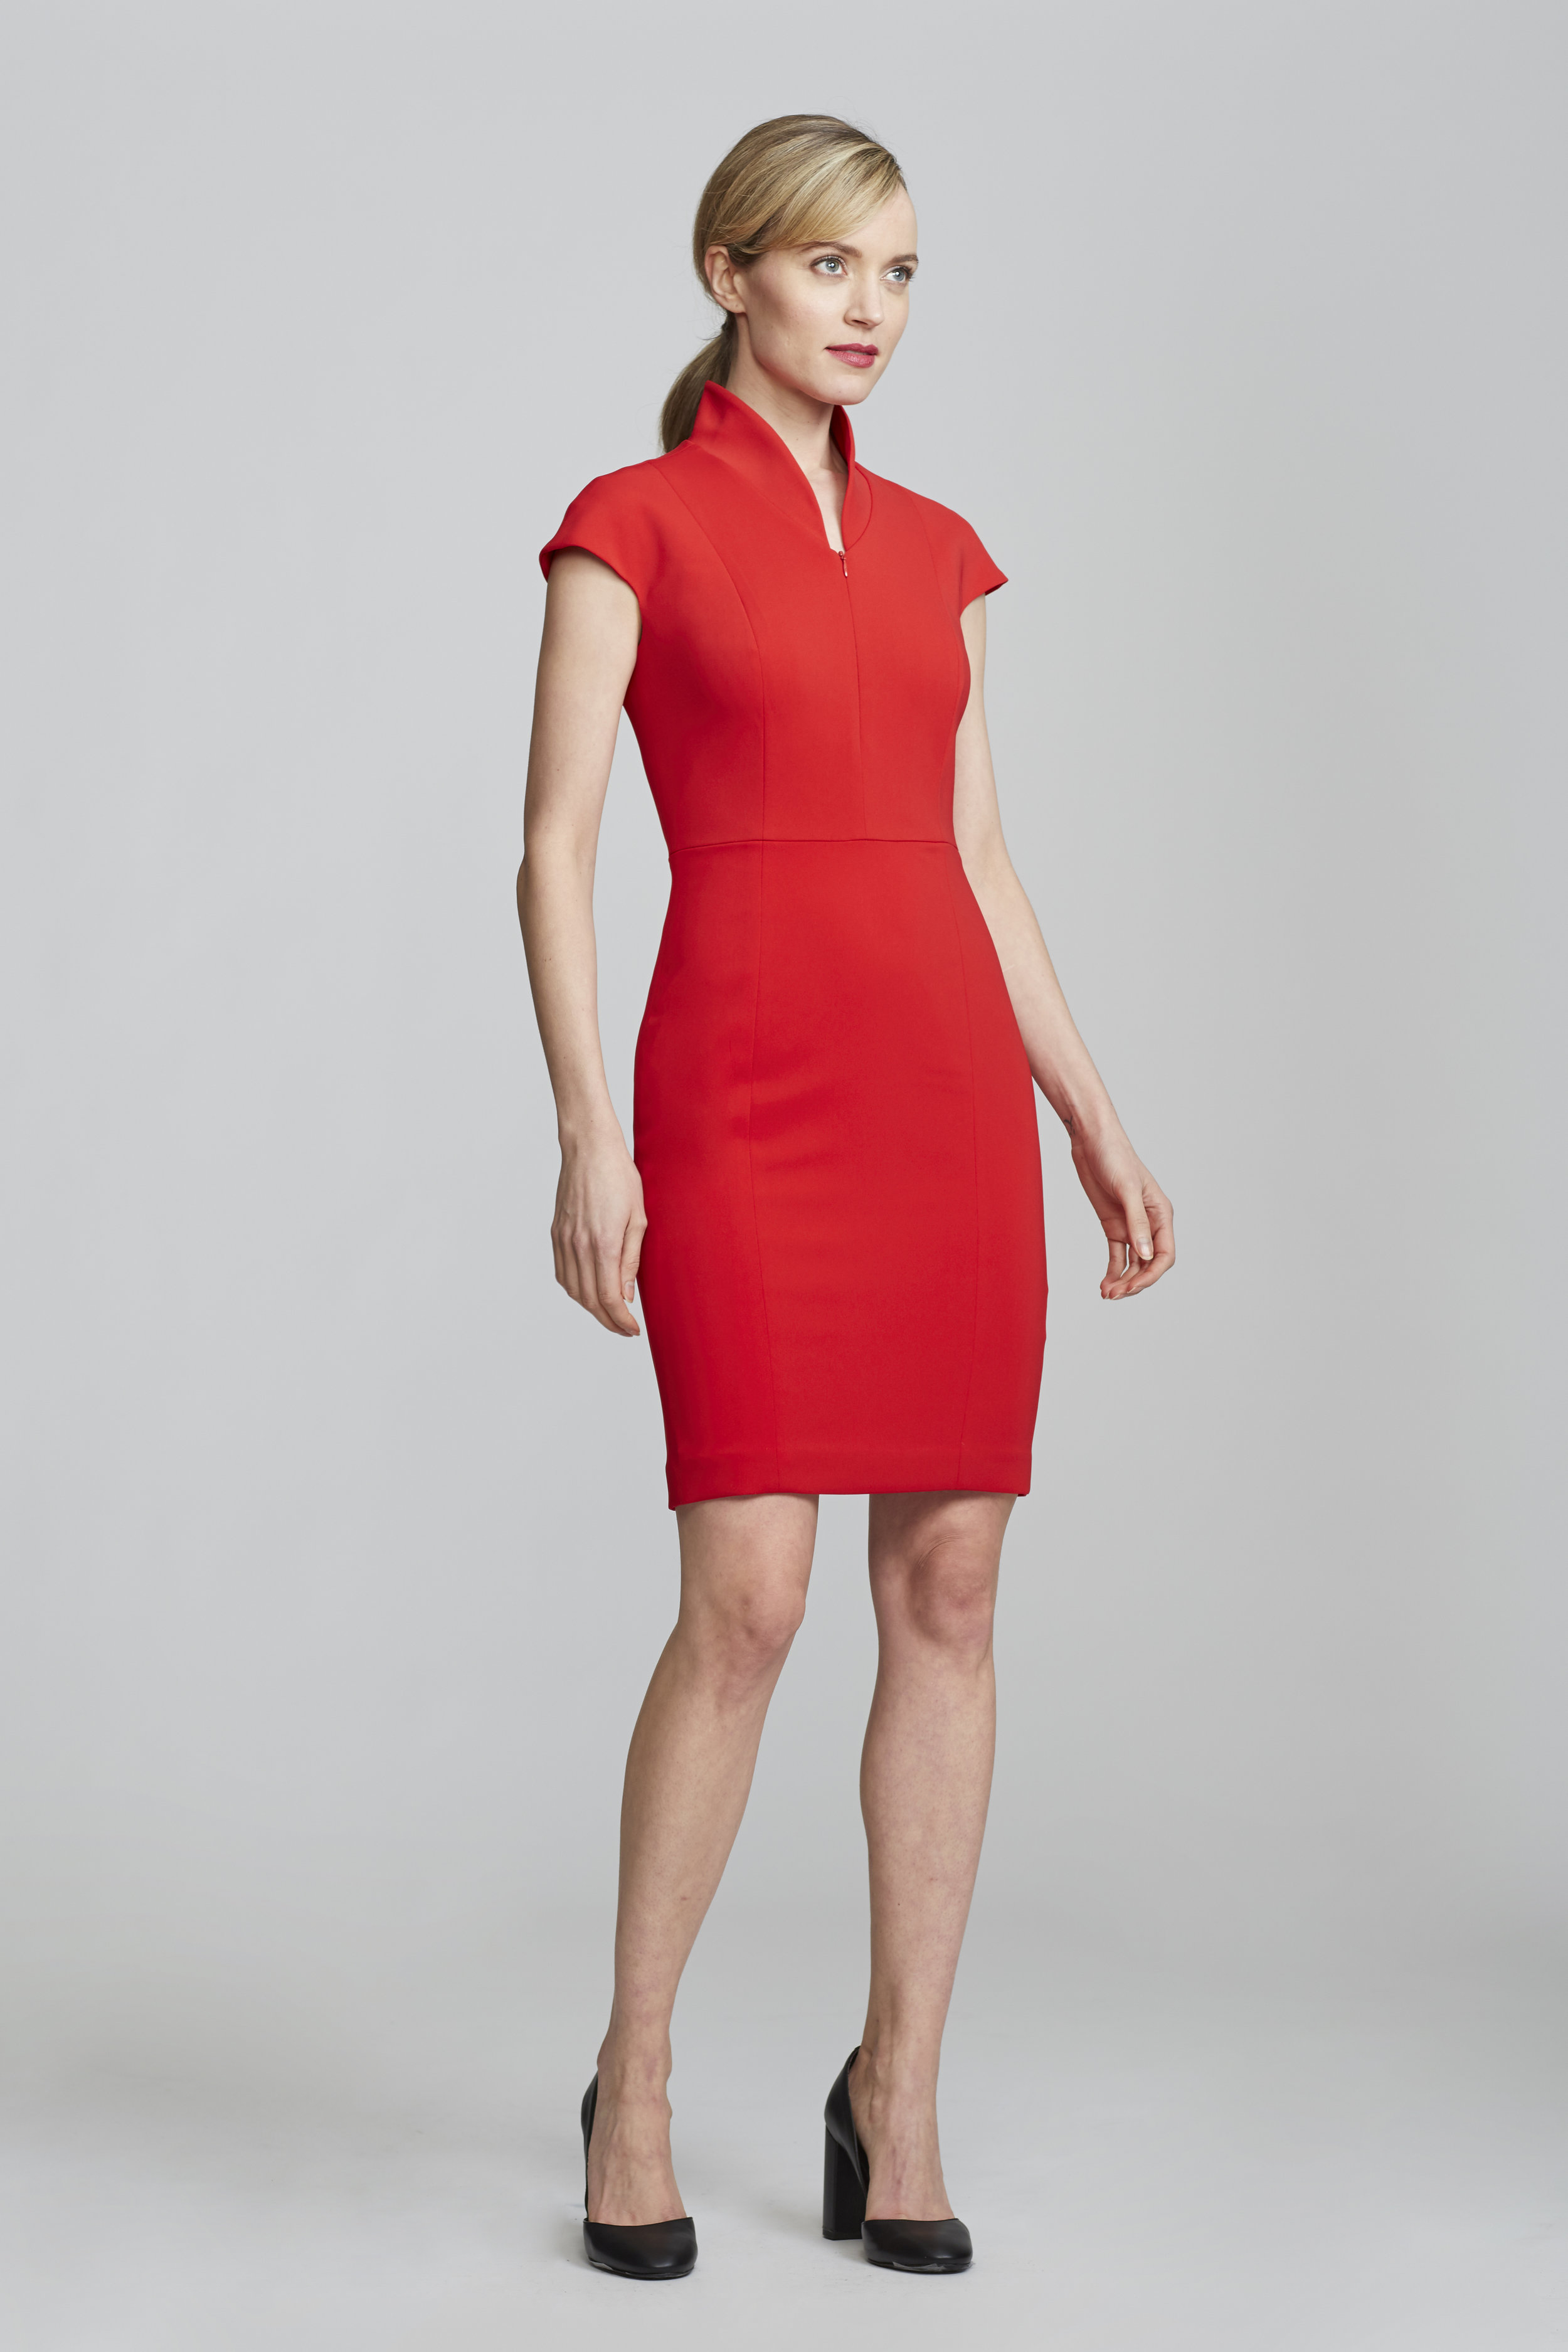 Nora Evelyn Dress Red - Get yours here